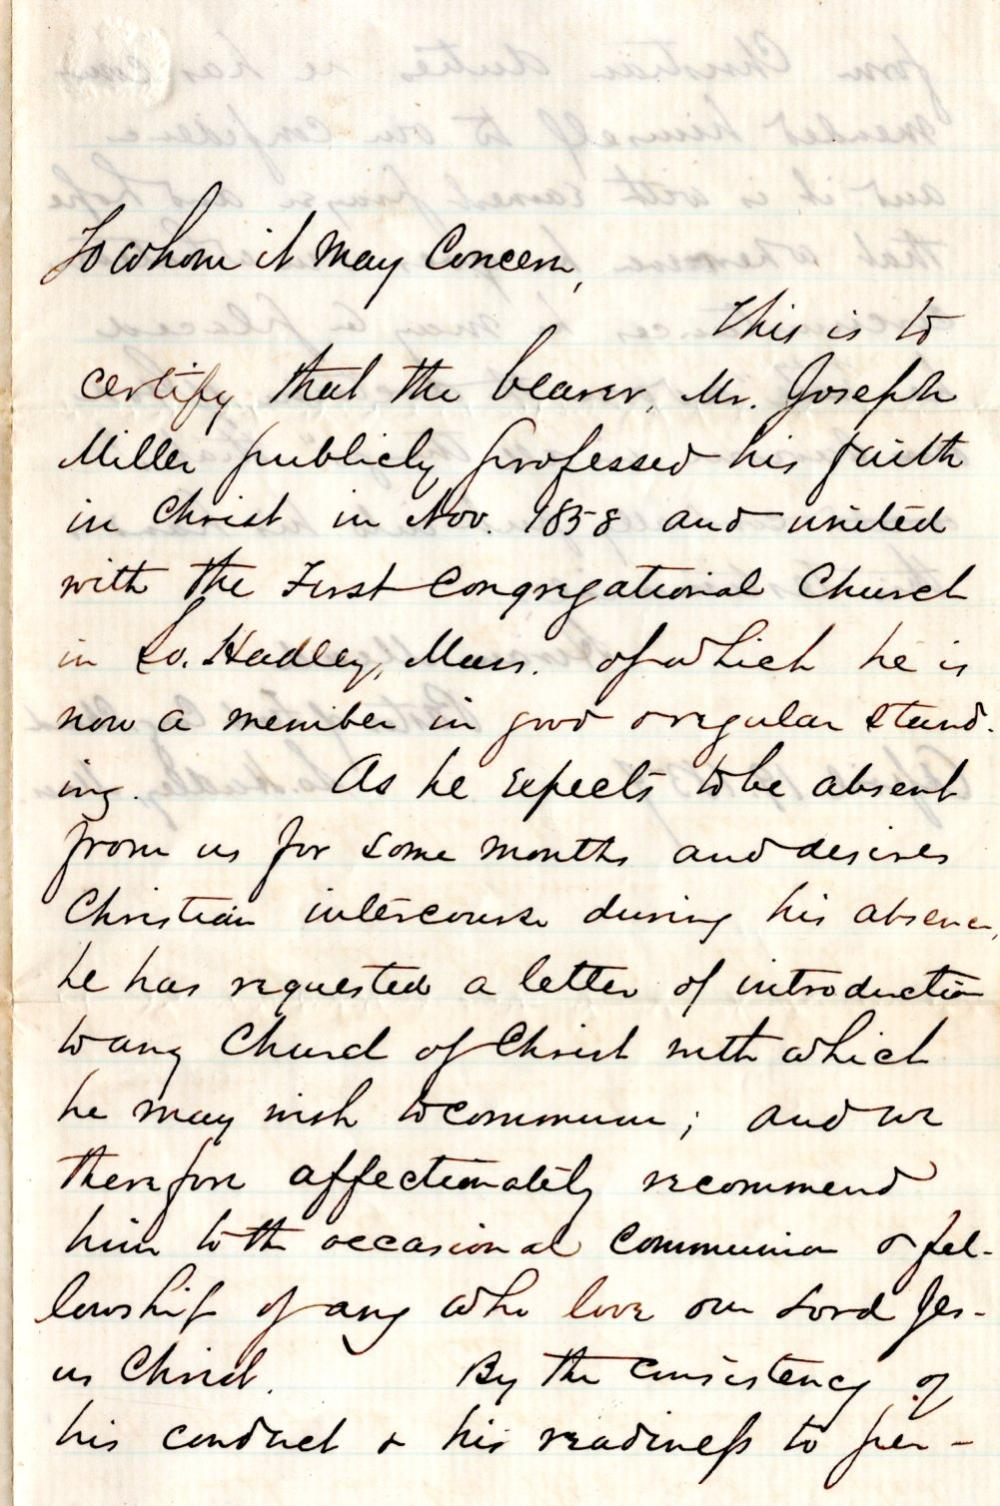 Deeply Christian letter, carried by soldier who died at Andersonville